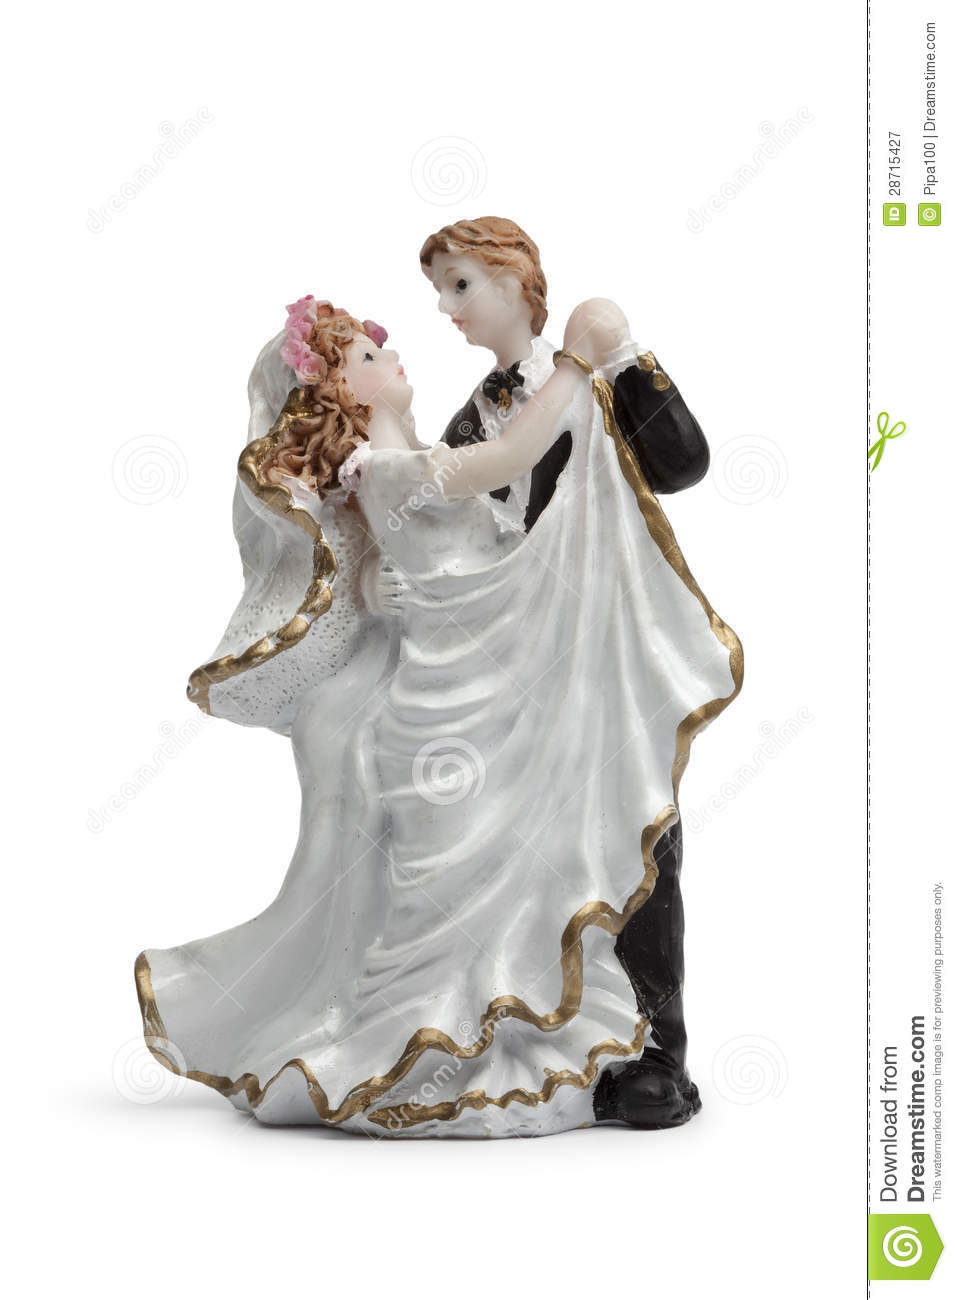 Unique Cake Toppers For Any Occasion - Over Cake Toppers